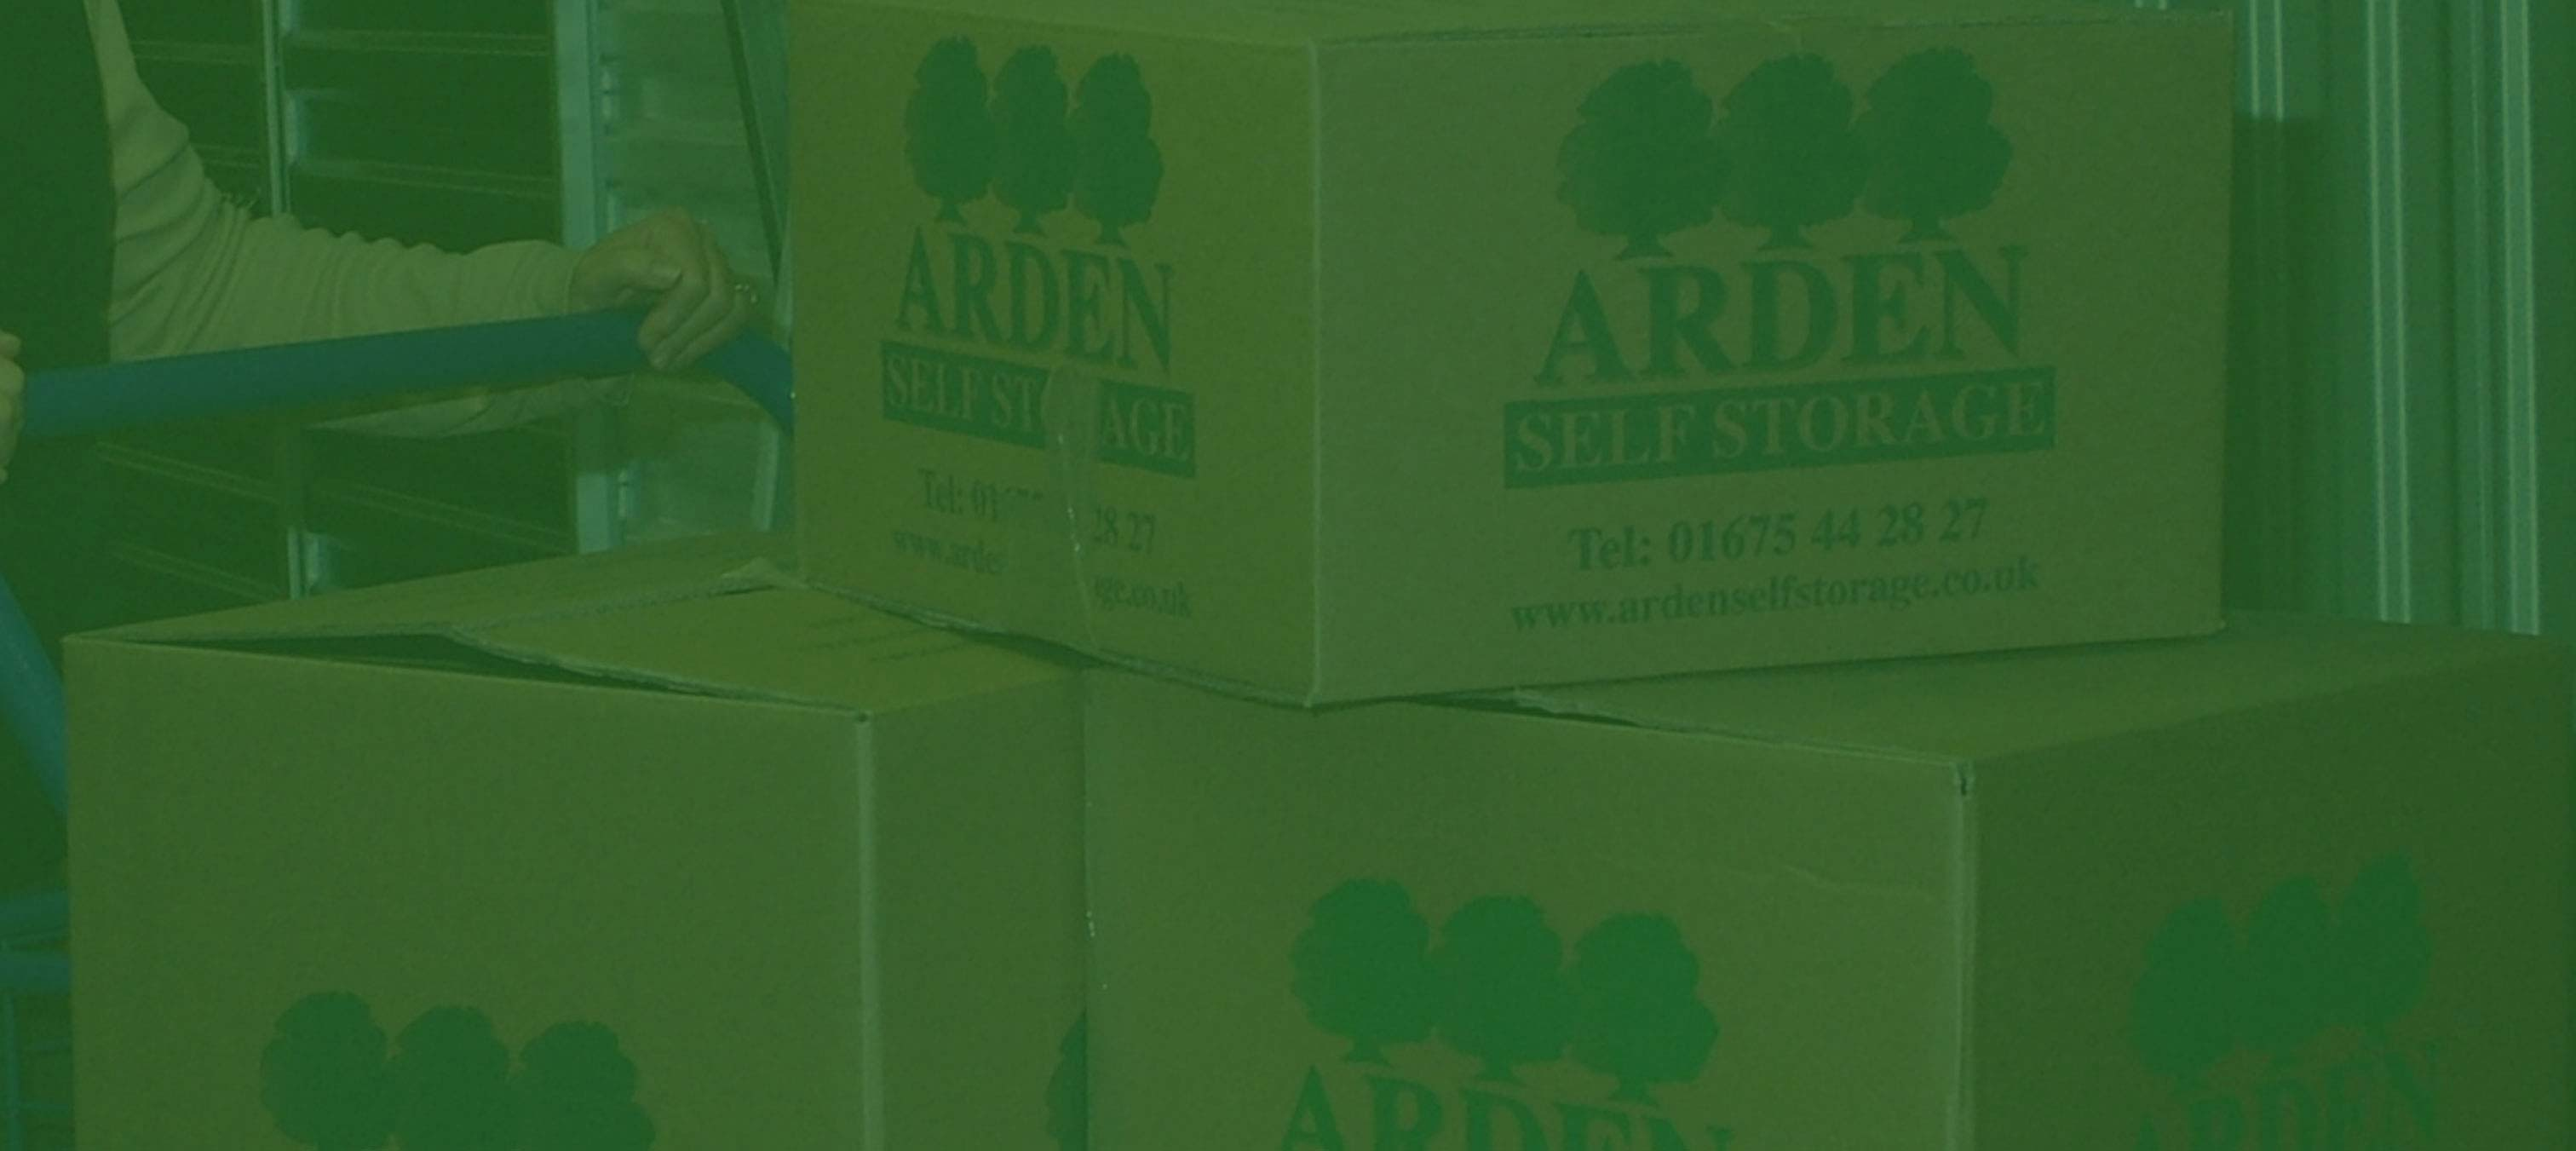 an image of Arden Self Storage boxes with a green hue for the banner